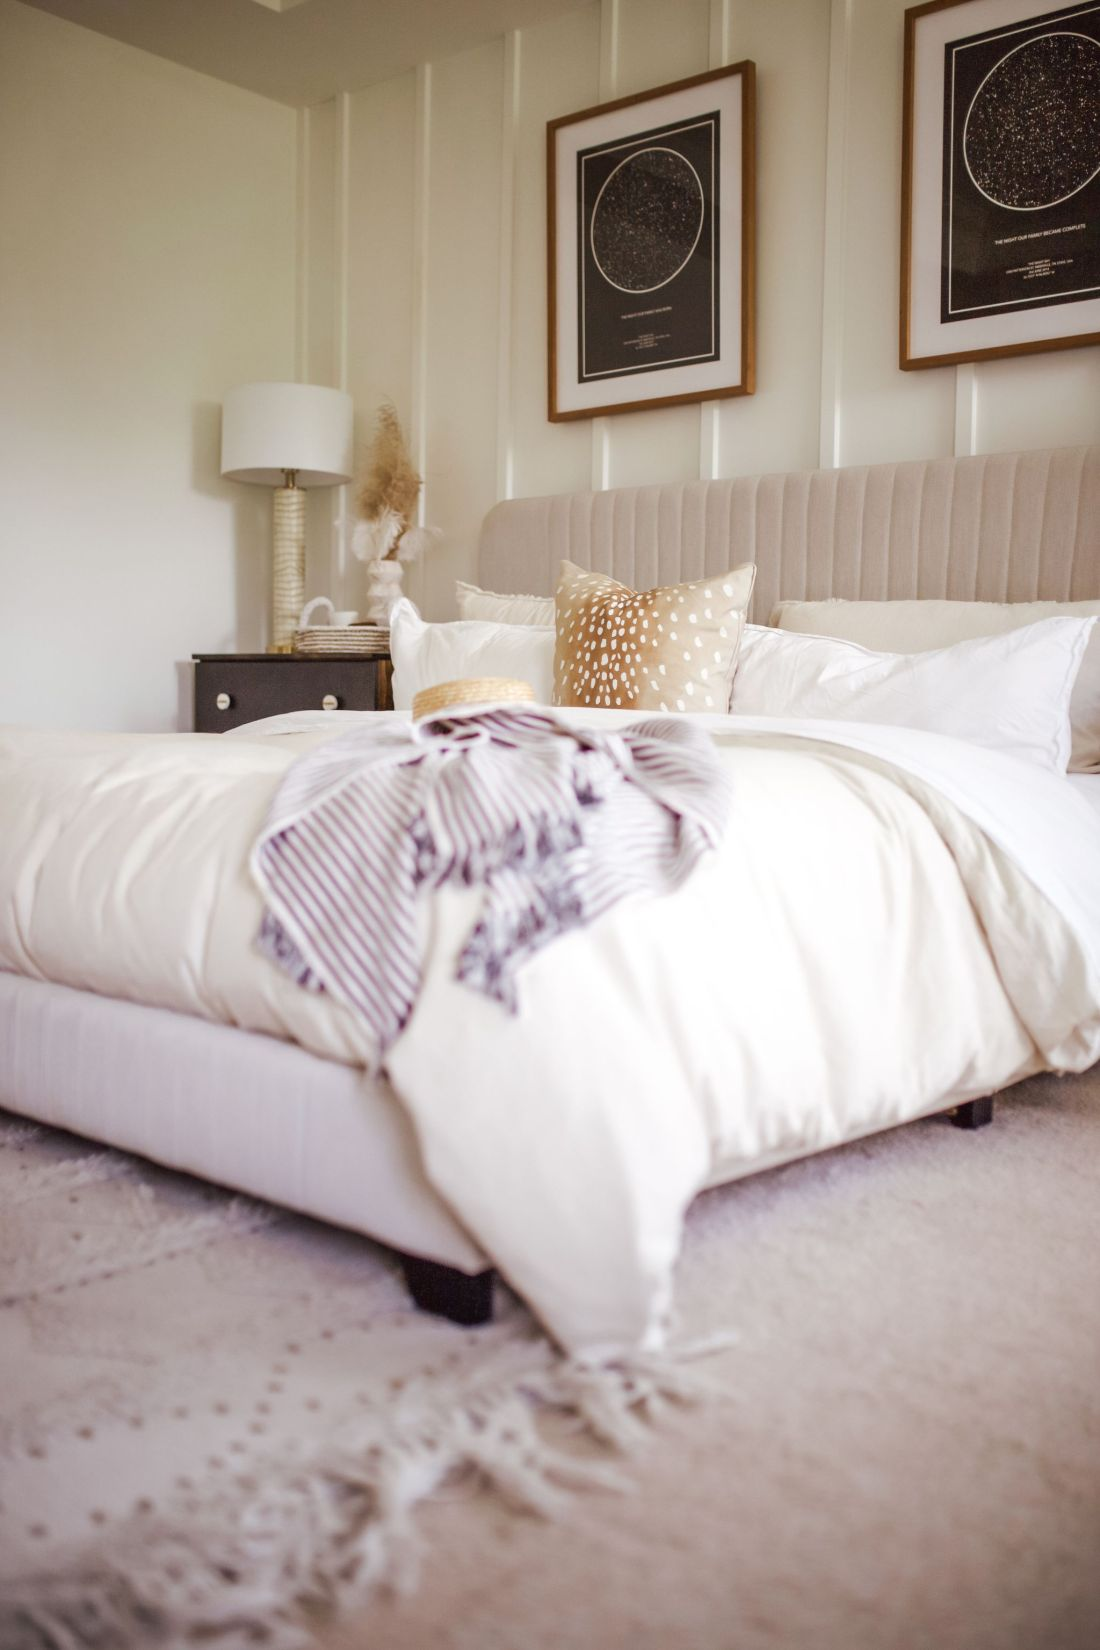 master bedroom refresh | Master Bedroom Remodel Ideas by popular Nashville life and style blog, Modern Day Moguls: image of a master bedroom with a velvet bed frame, white bedding and a antelope print throw pillow.